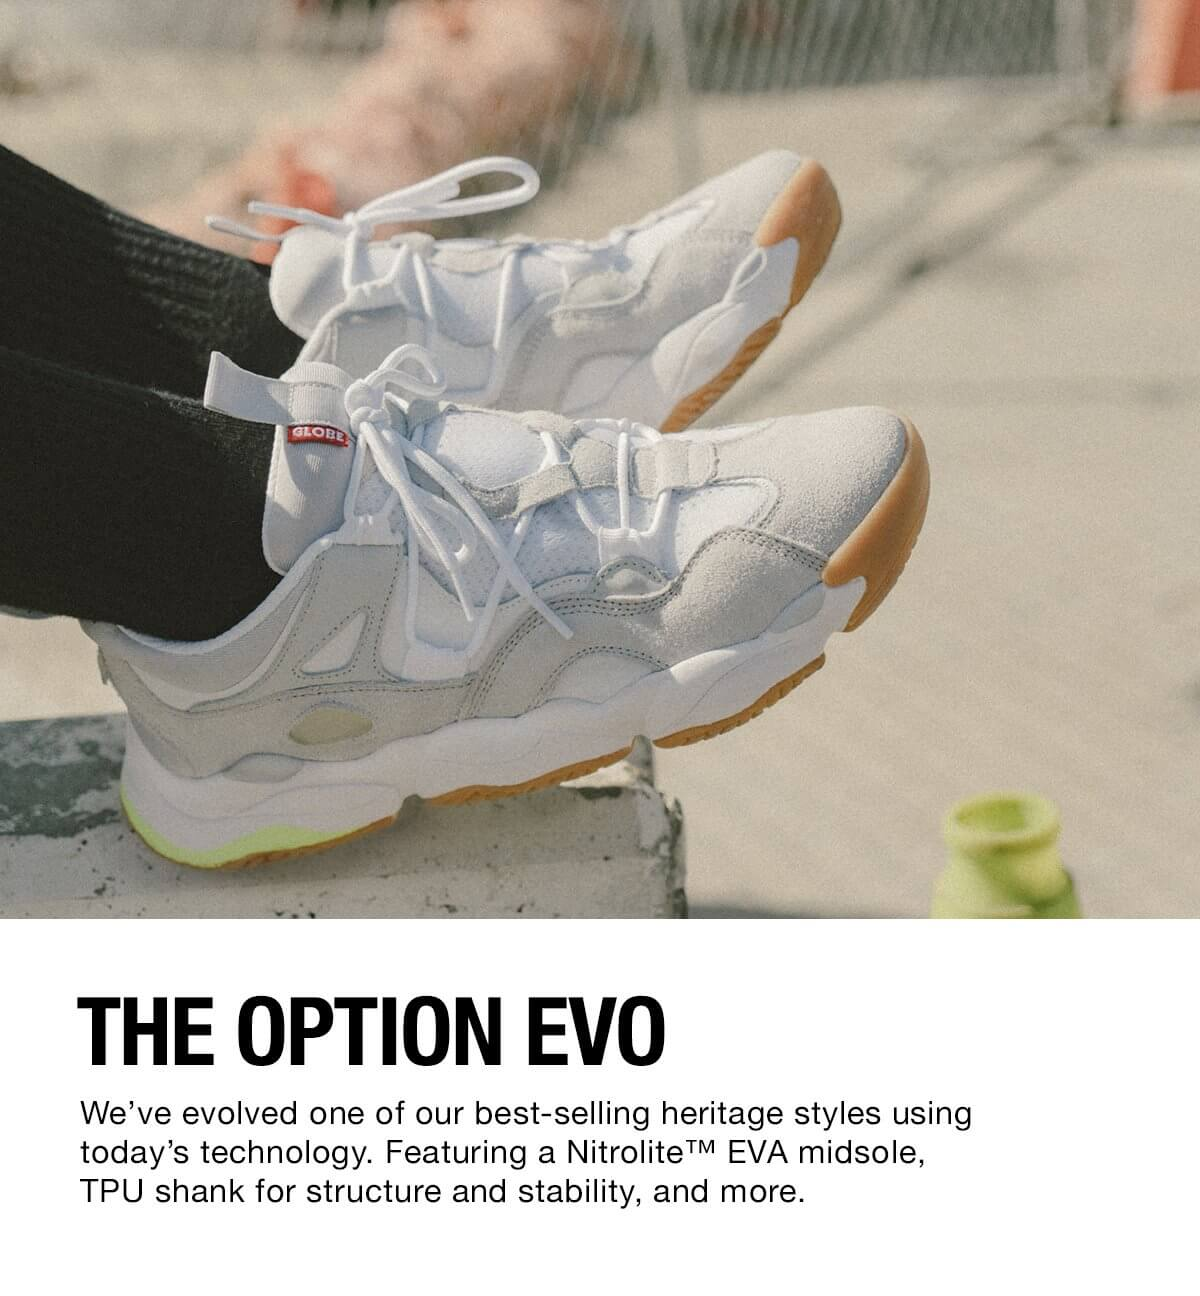 THE OPTION EVO GLOBE WHITE GUM